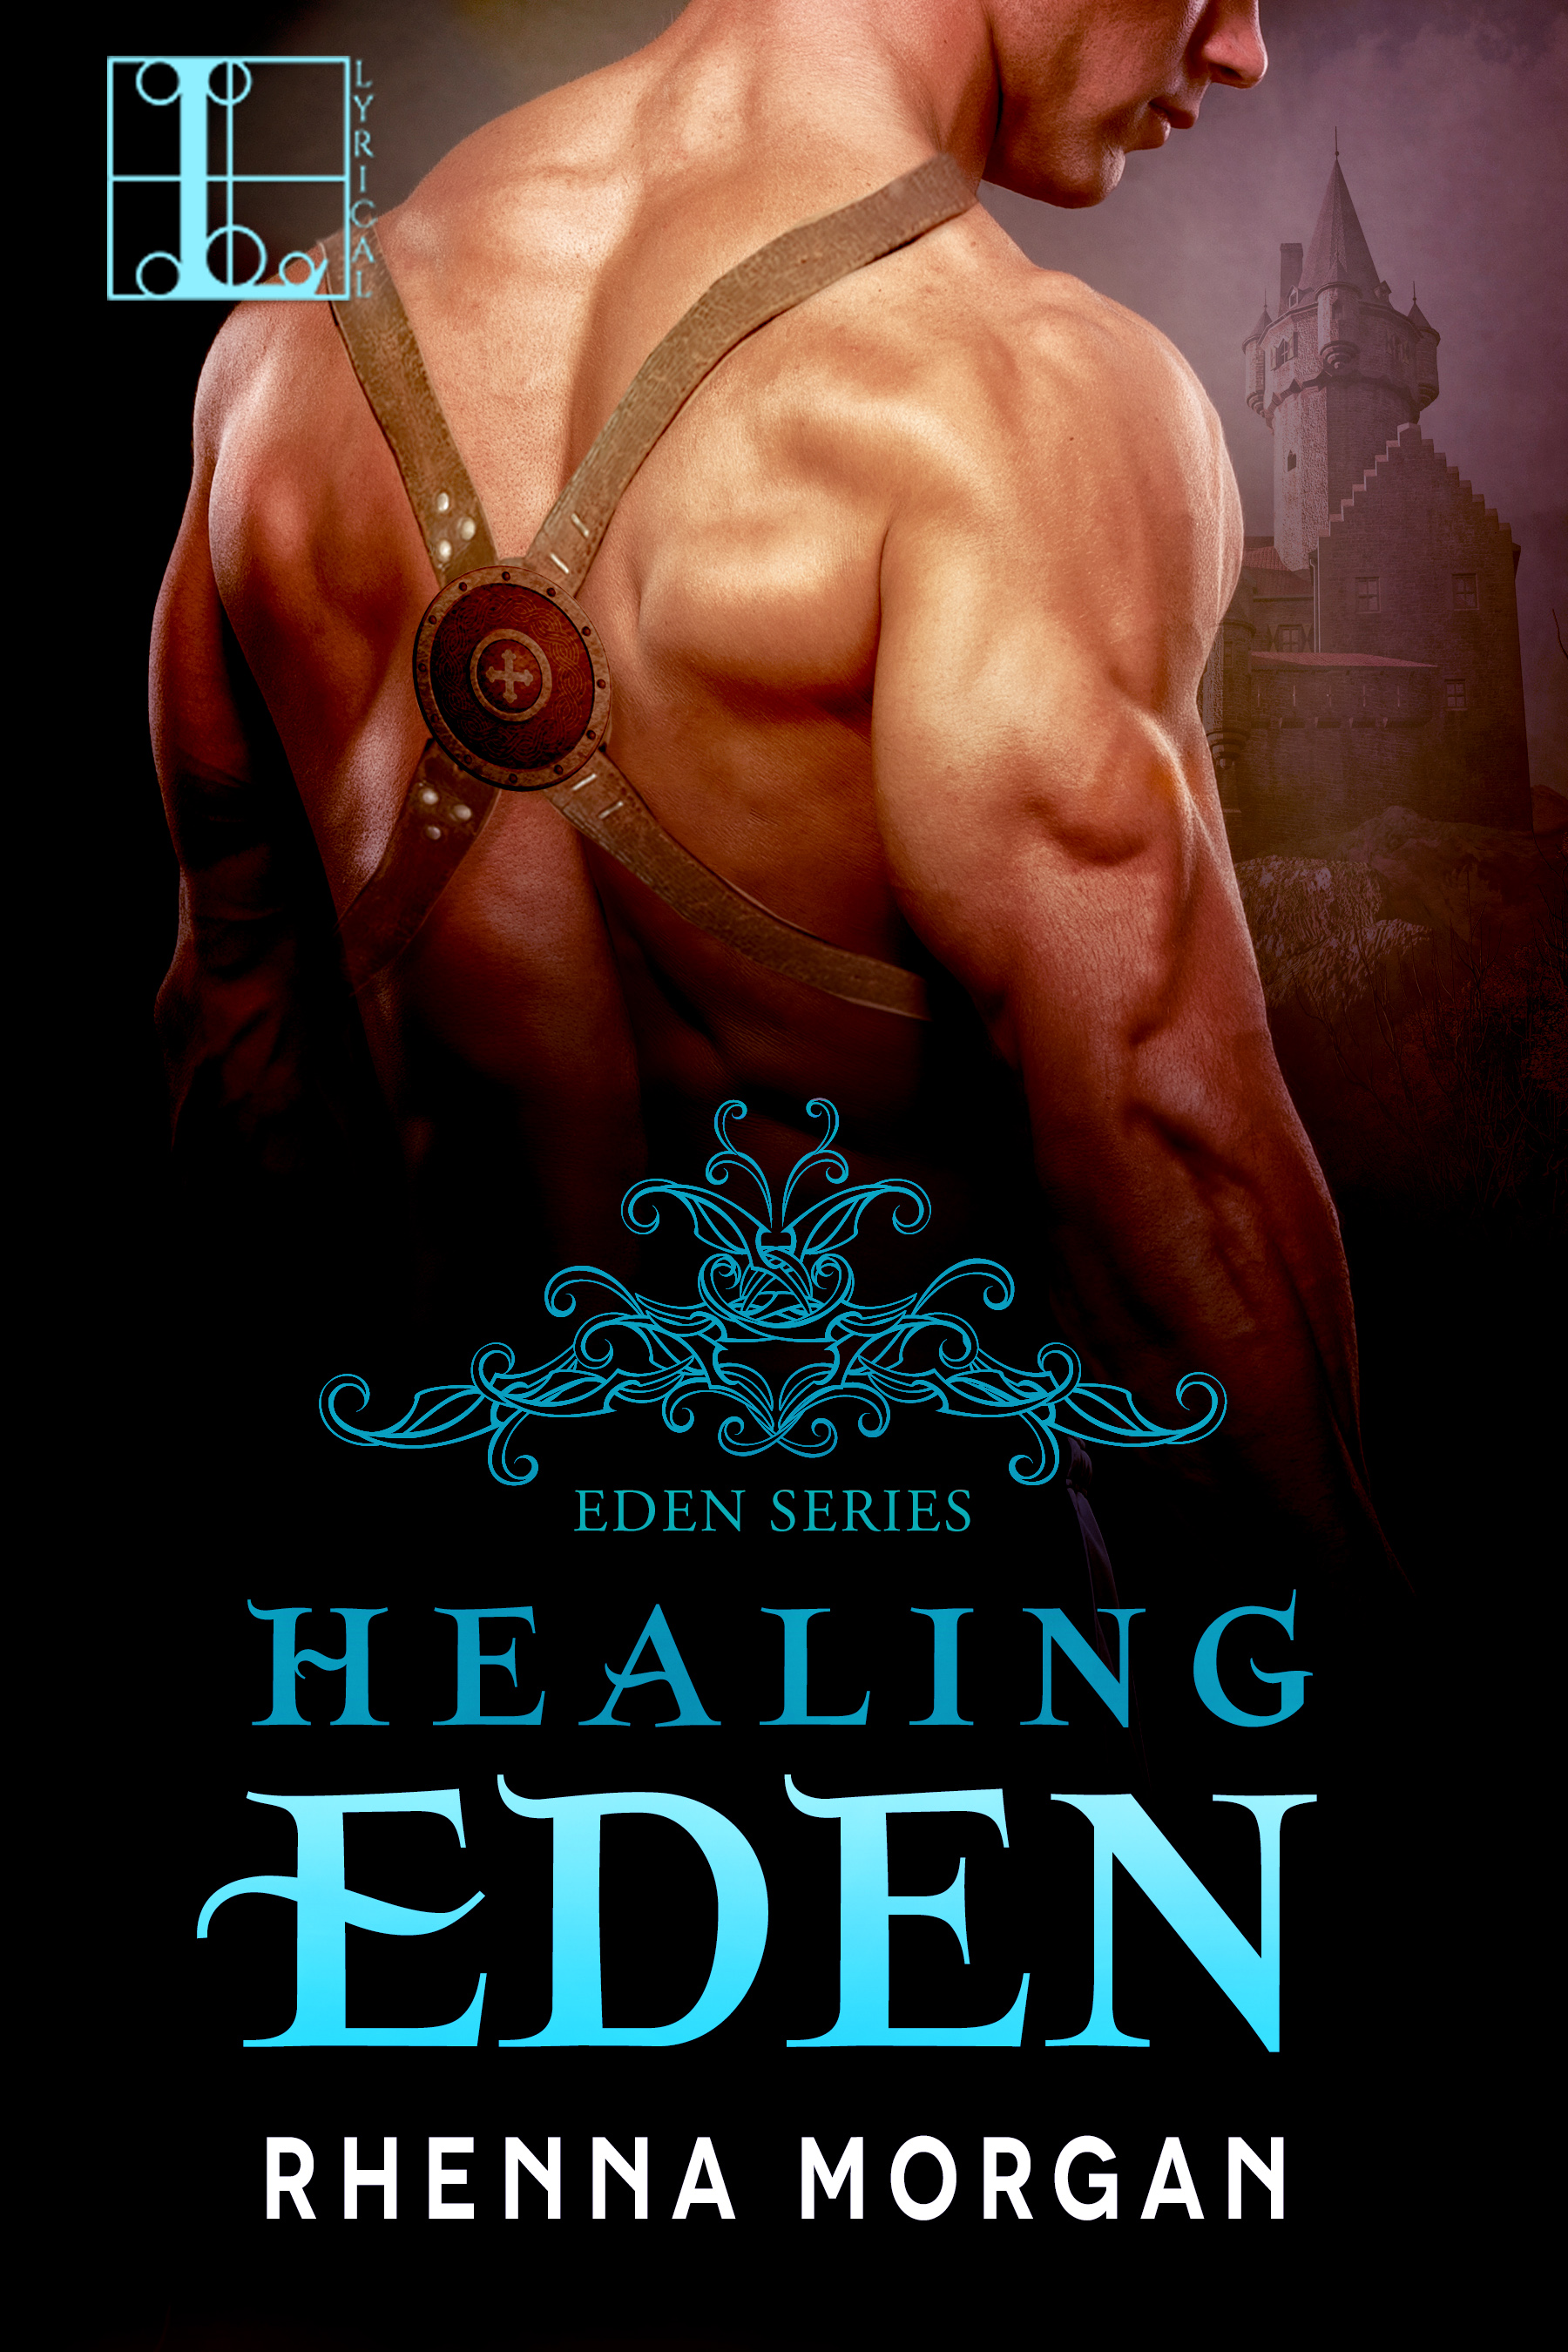 Healing Eden by Rhenna Morgan